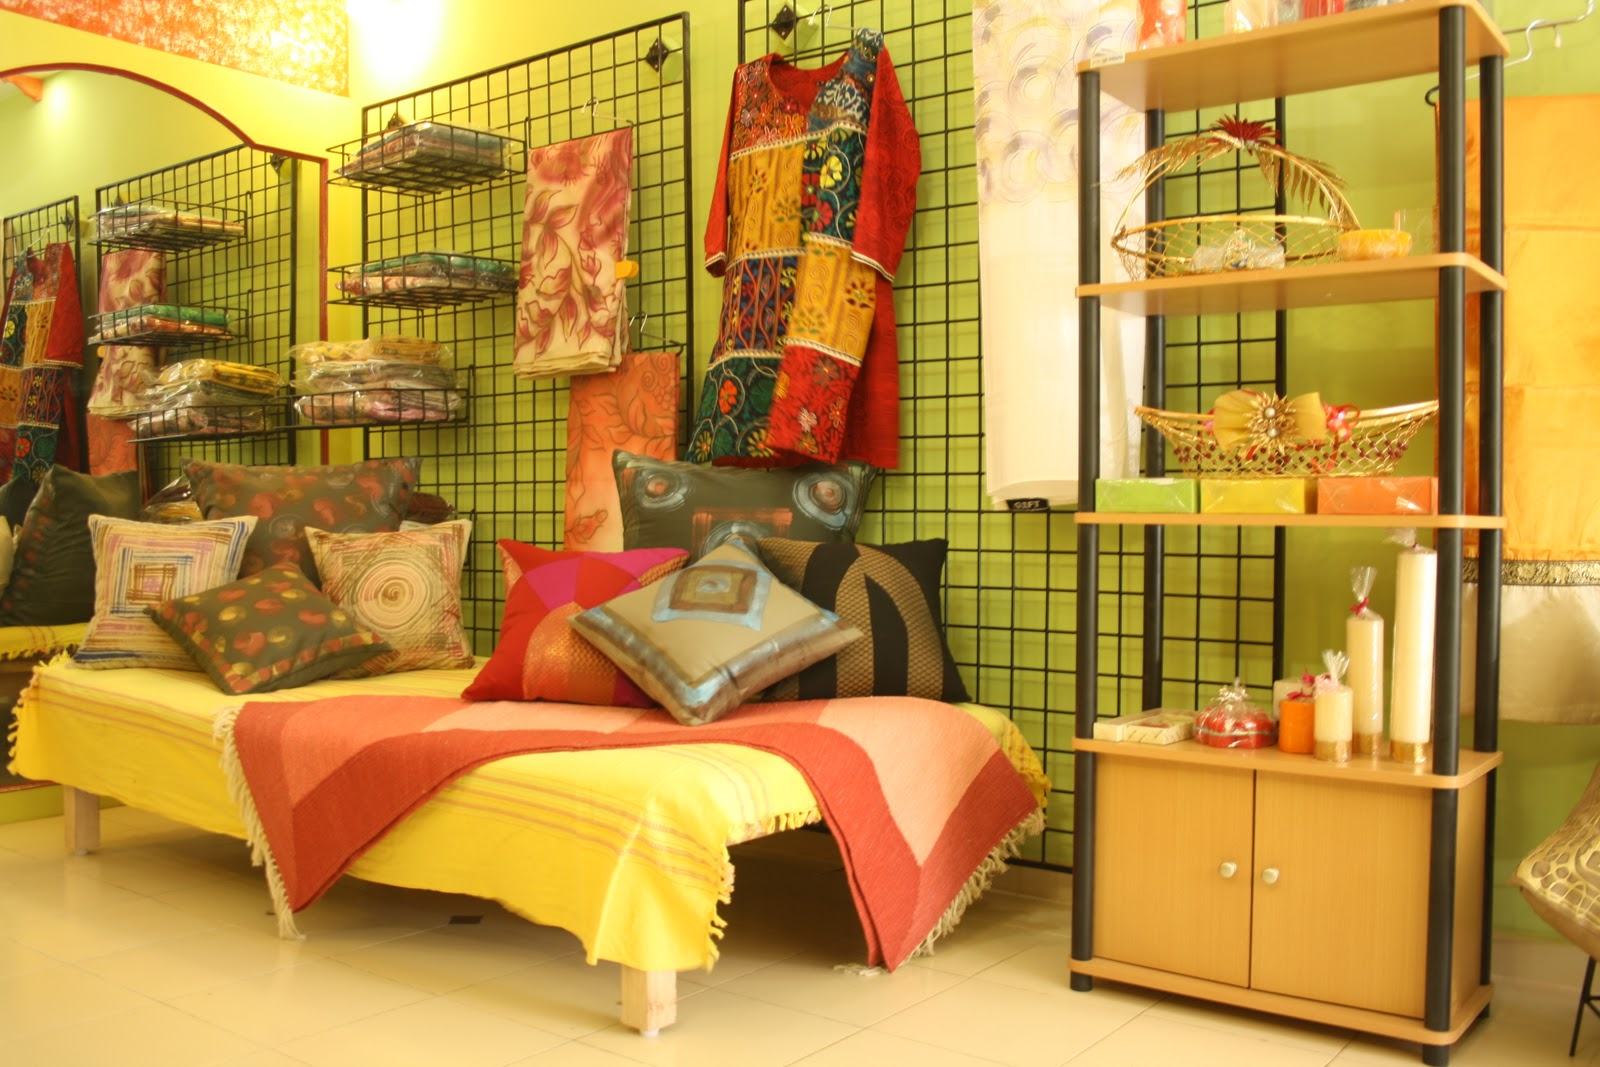 DESIGN MANDI CRAFT HUB: HANDICRAFTS & HOME DECOR